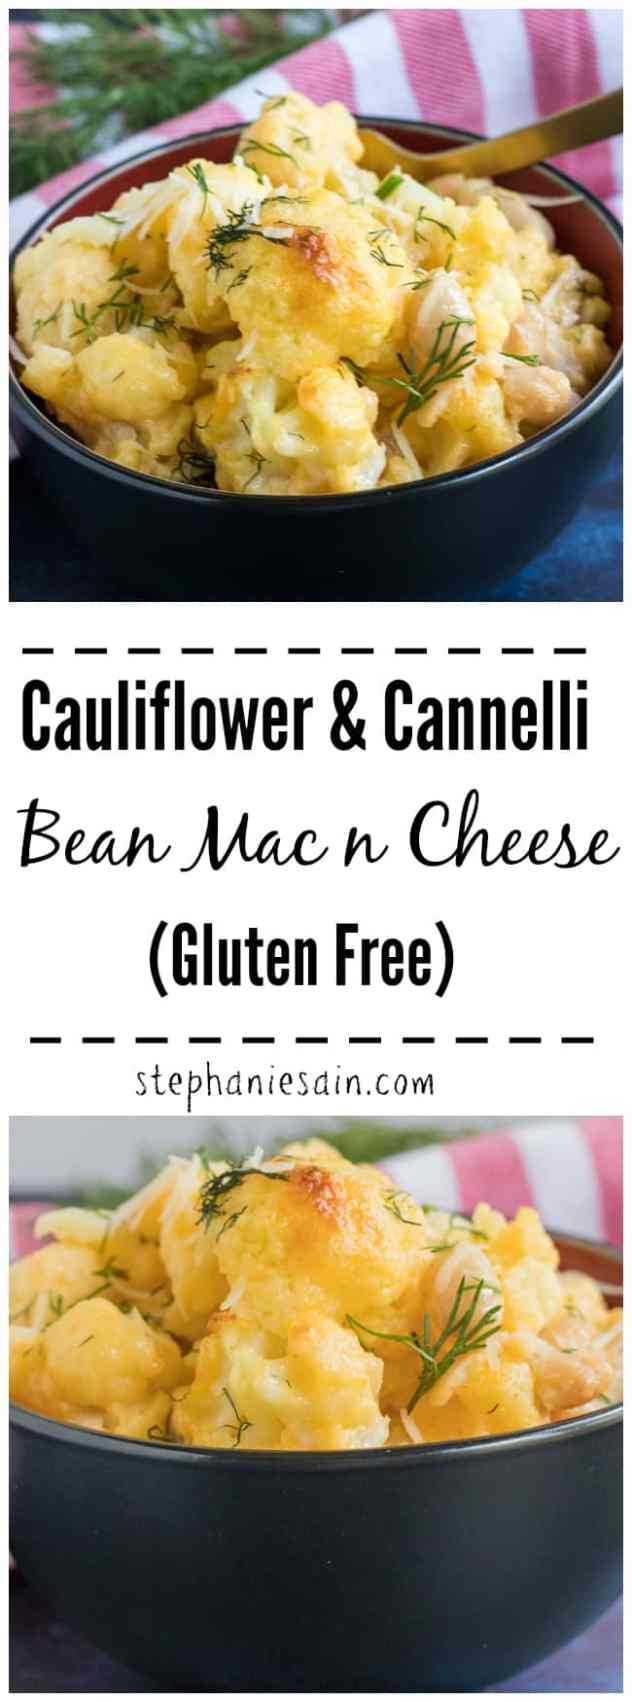 This Cauliflower & Cannelli Bean Mac n Cheese is easy, creamy and delicious. A healthier version for mac n cheese using just veggies and cheese. A comfort food loaded with flavor that's perfect for gatherings, potlucks or a family friendly meal. Gluten Free & Low carb.